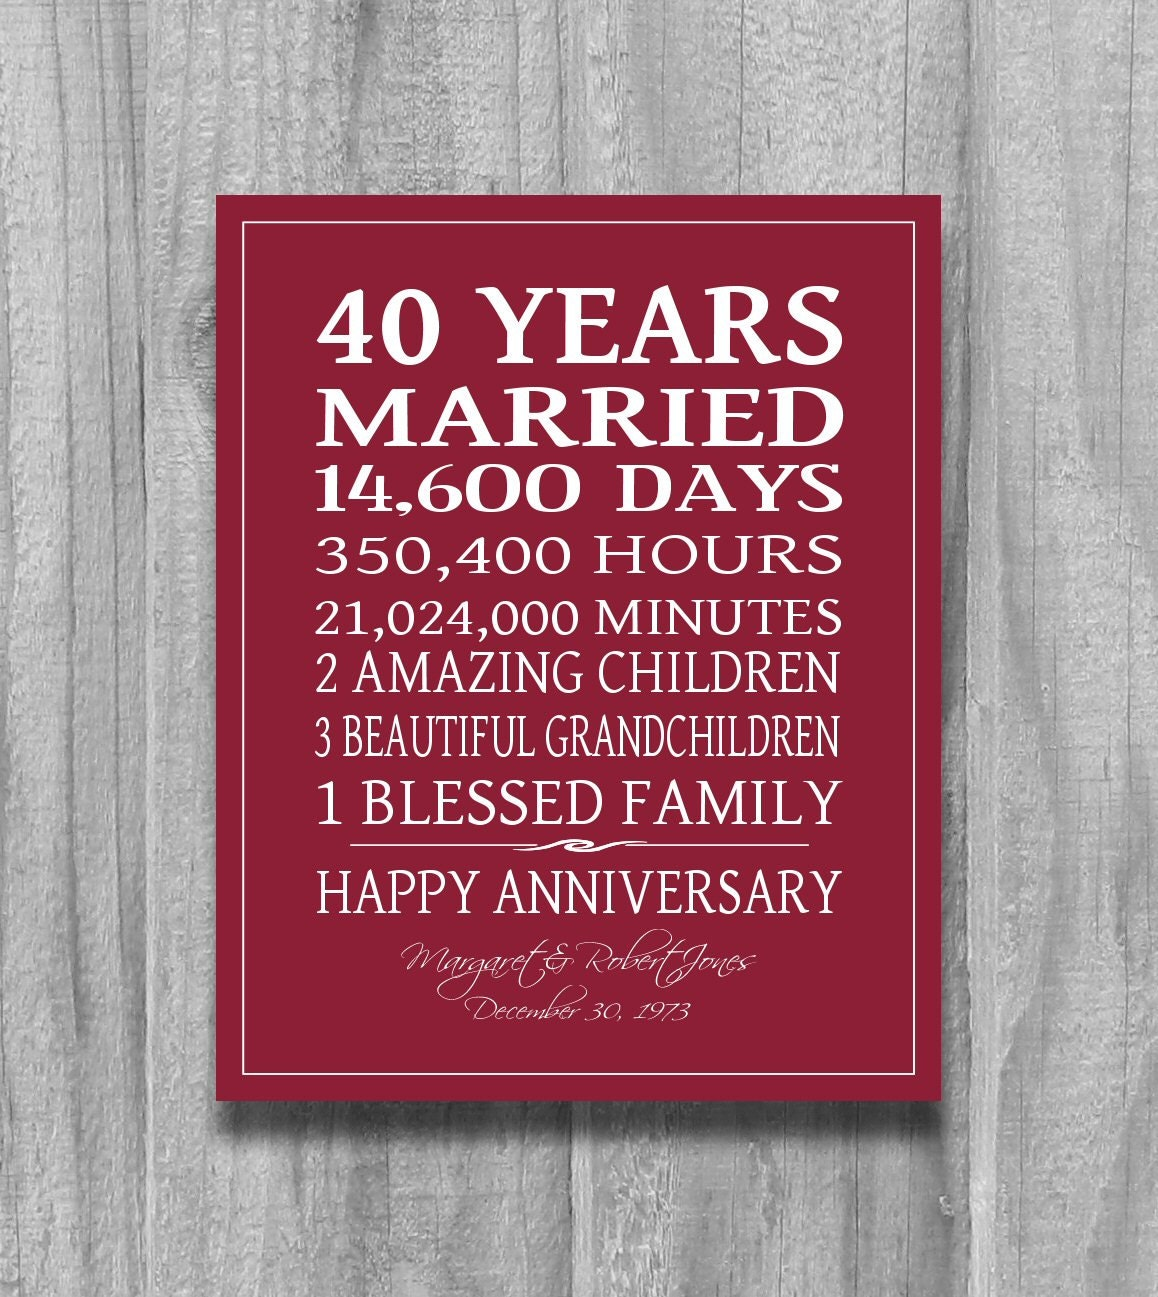 Wedding Anniversary Gift For New Mom : RUBY 4Oth Anniversary Gift Personalized by PrintsbyChristine